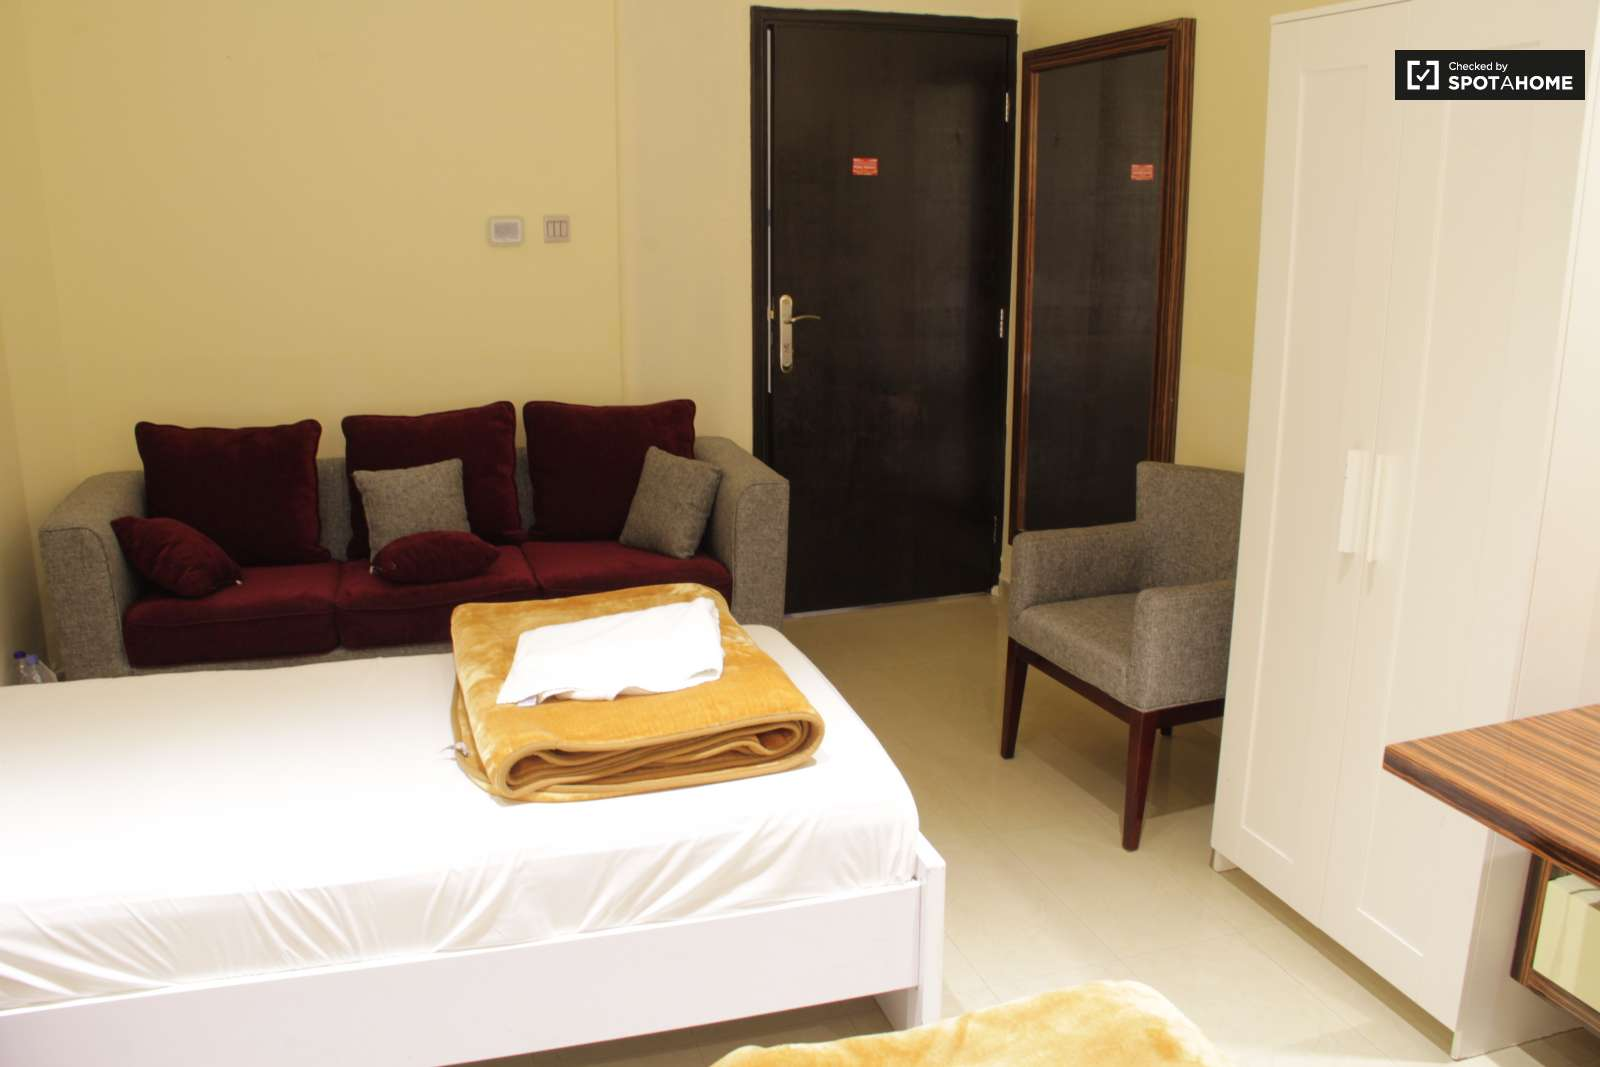 Single Bedroom Suite Rooms For Rent In Apartment With Pool Access In Al Barsha Spotahome